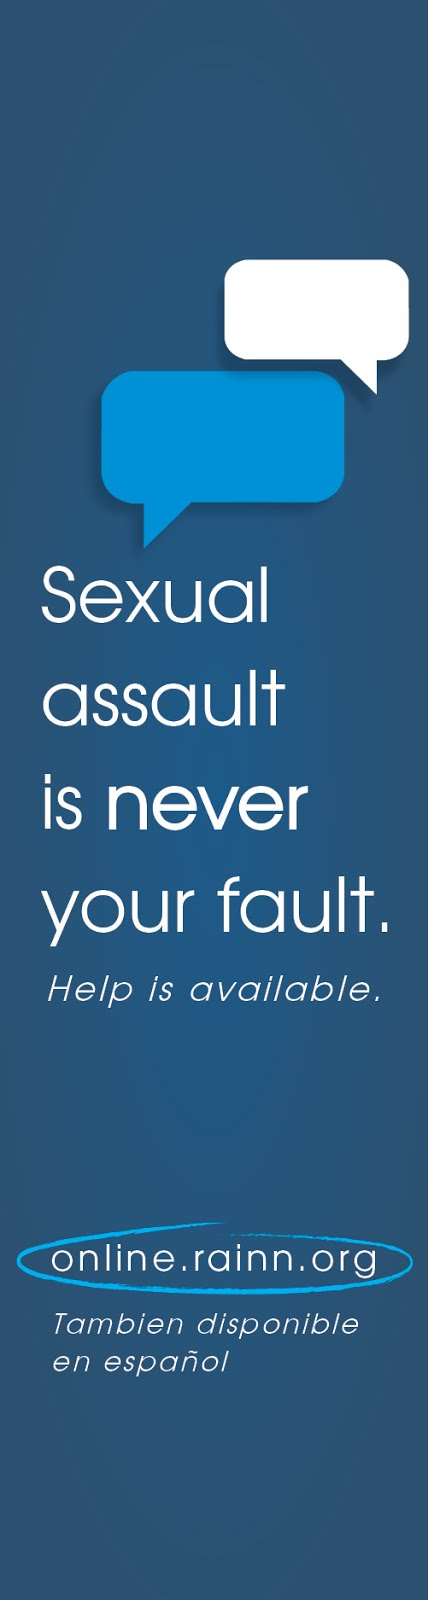 Sexual Assault Is Never Your Fault